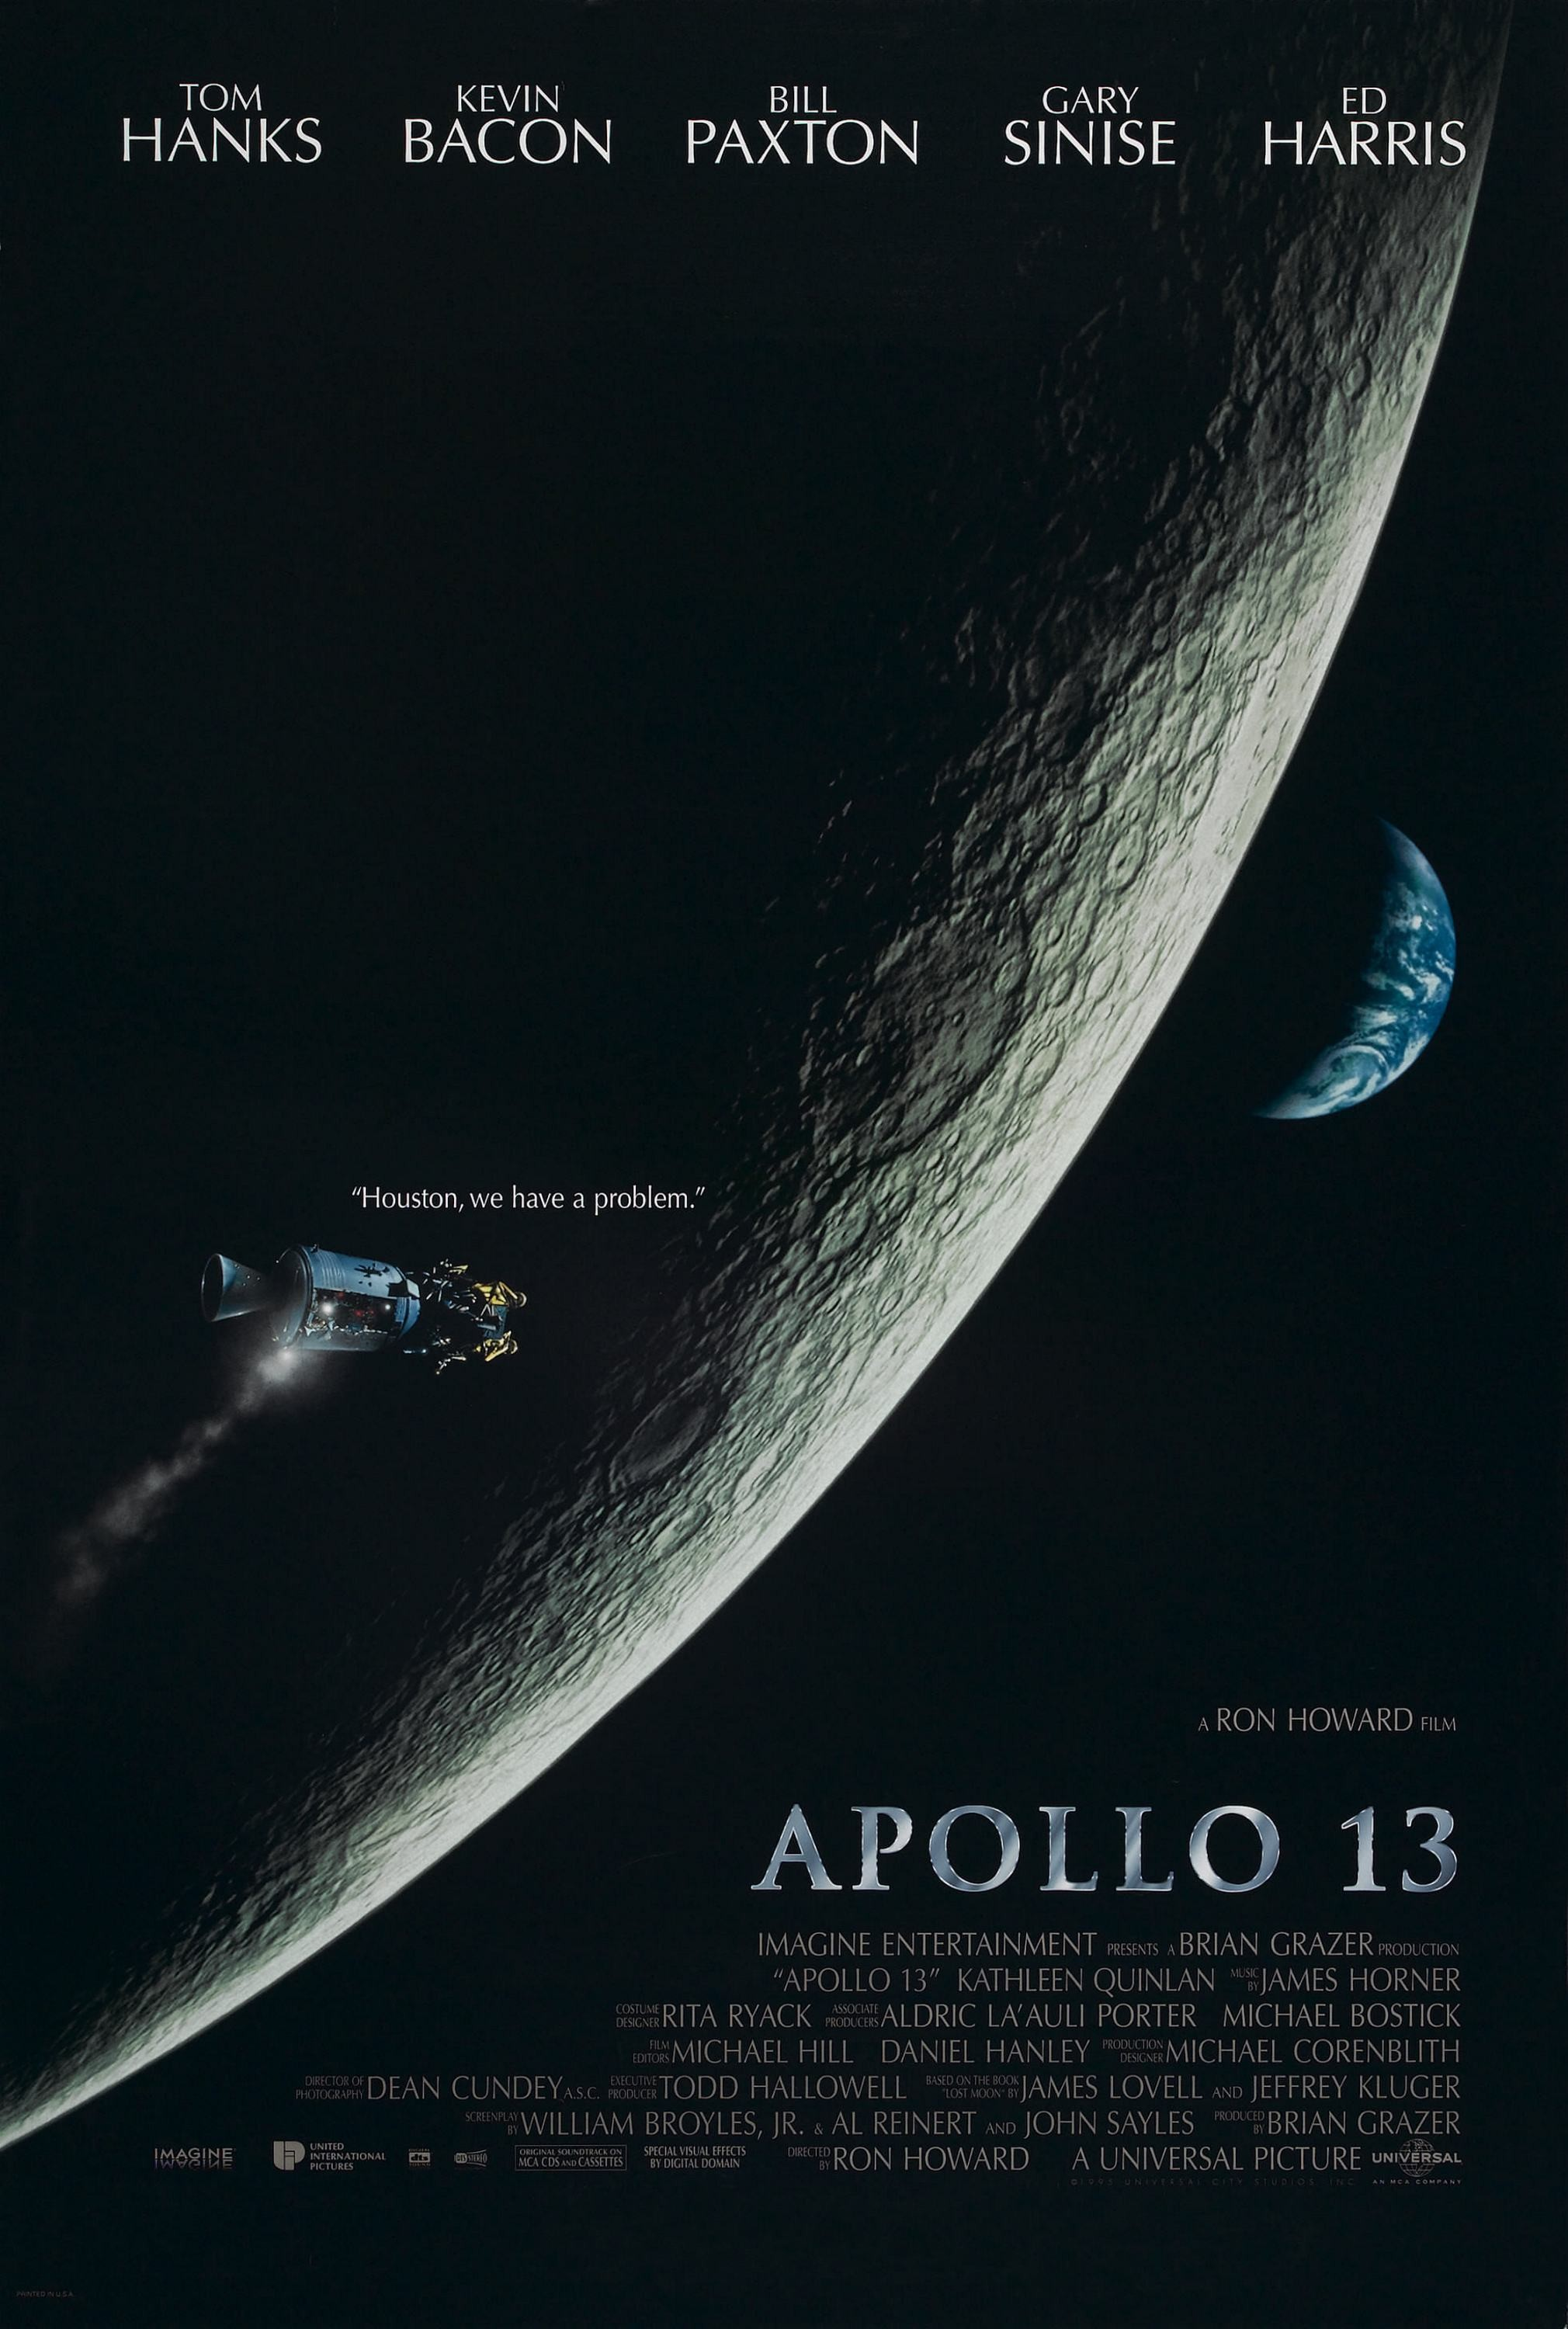 An image of the Apollo 13 Movie Cover